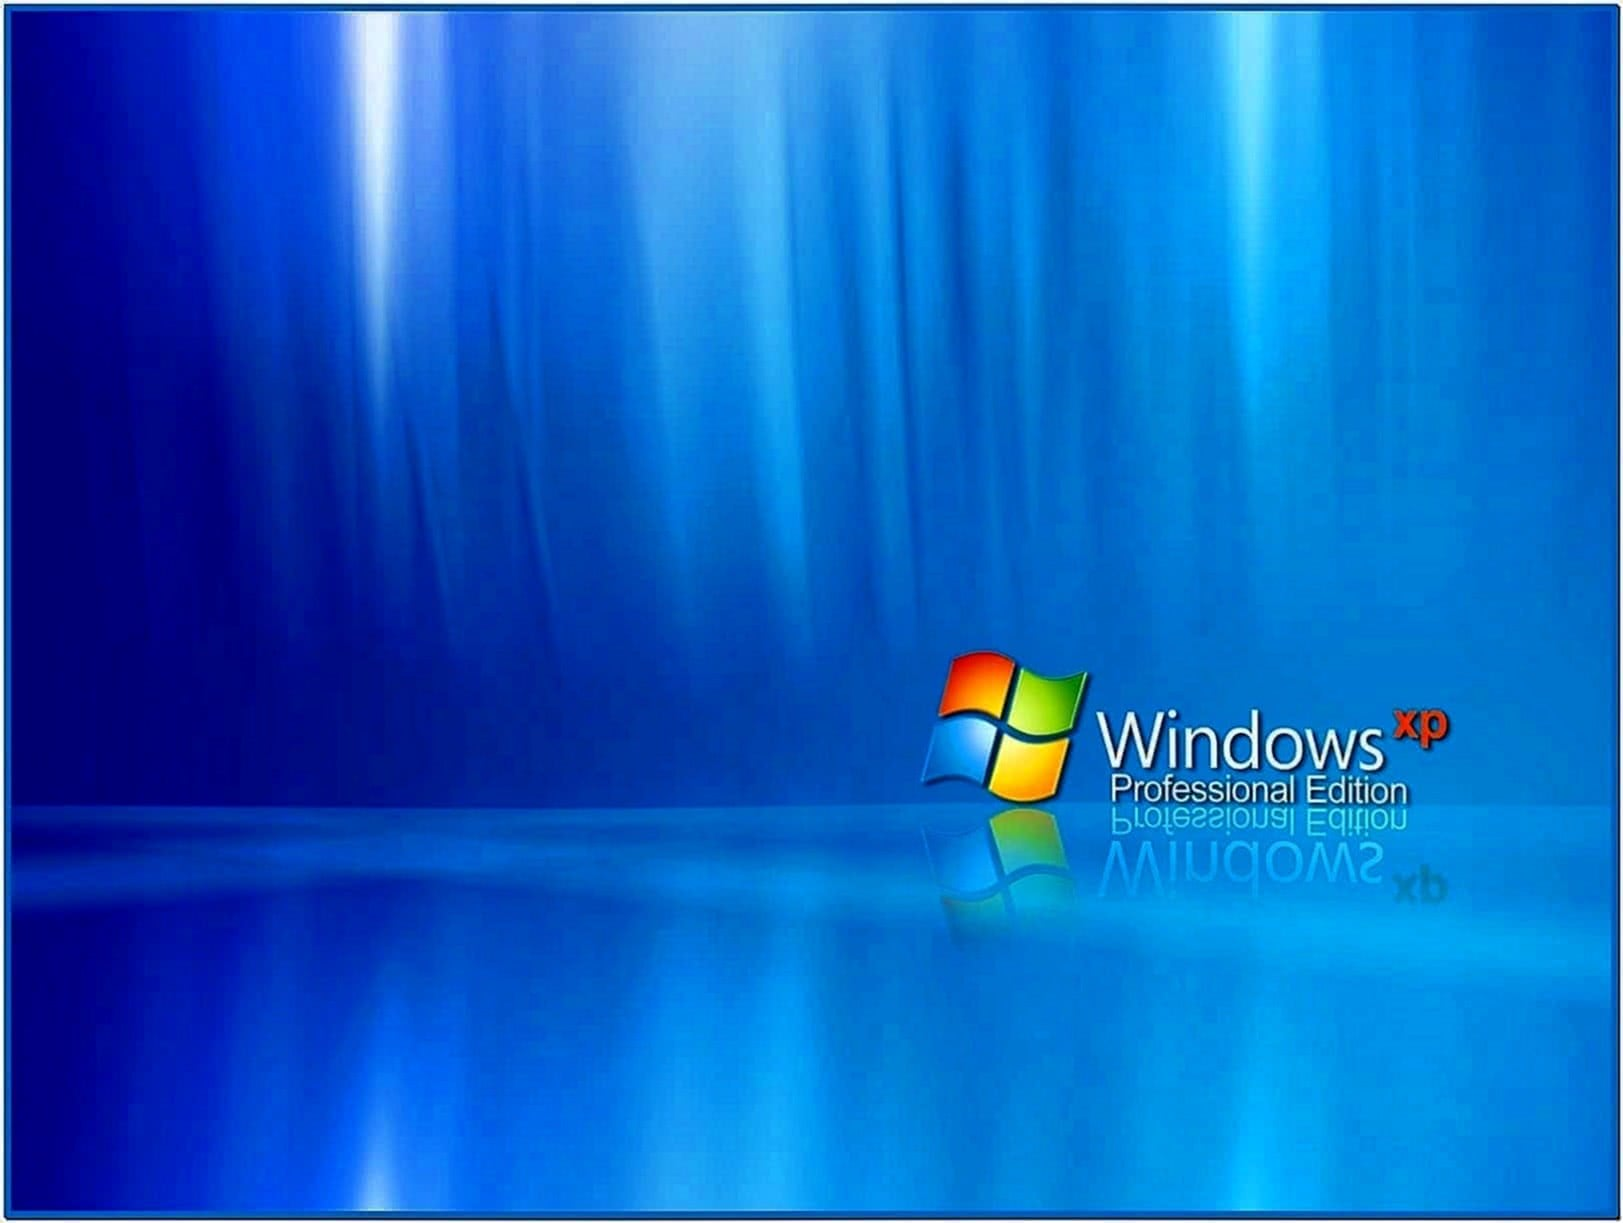 Screensavers Windows XP Pro